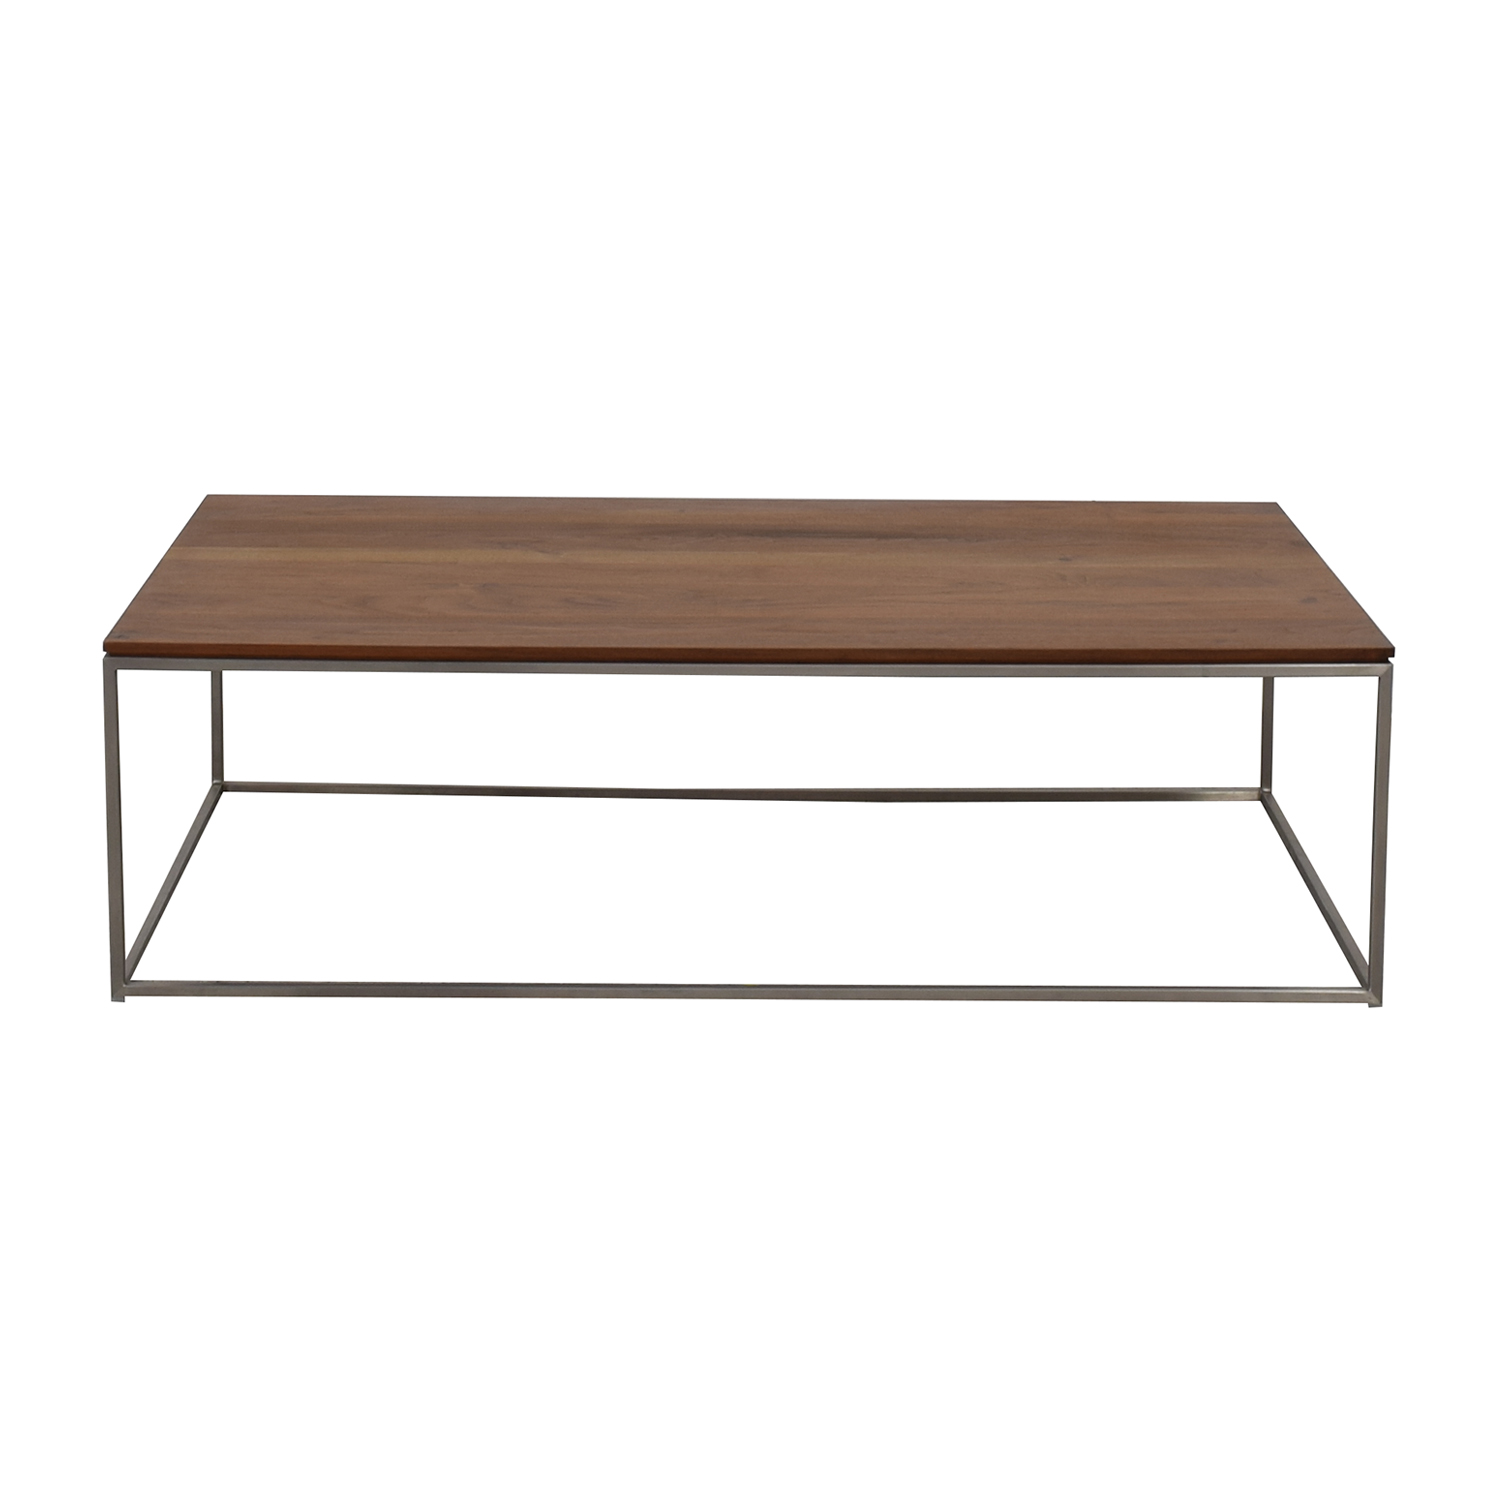 Crate & Barrel Crate & Barrel Frame Medium Coffee Table Coffee Tables